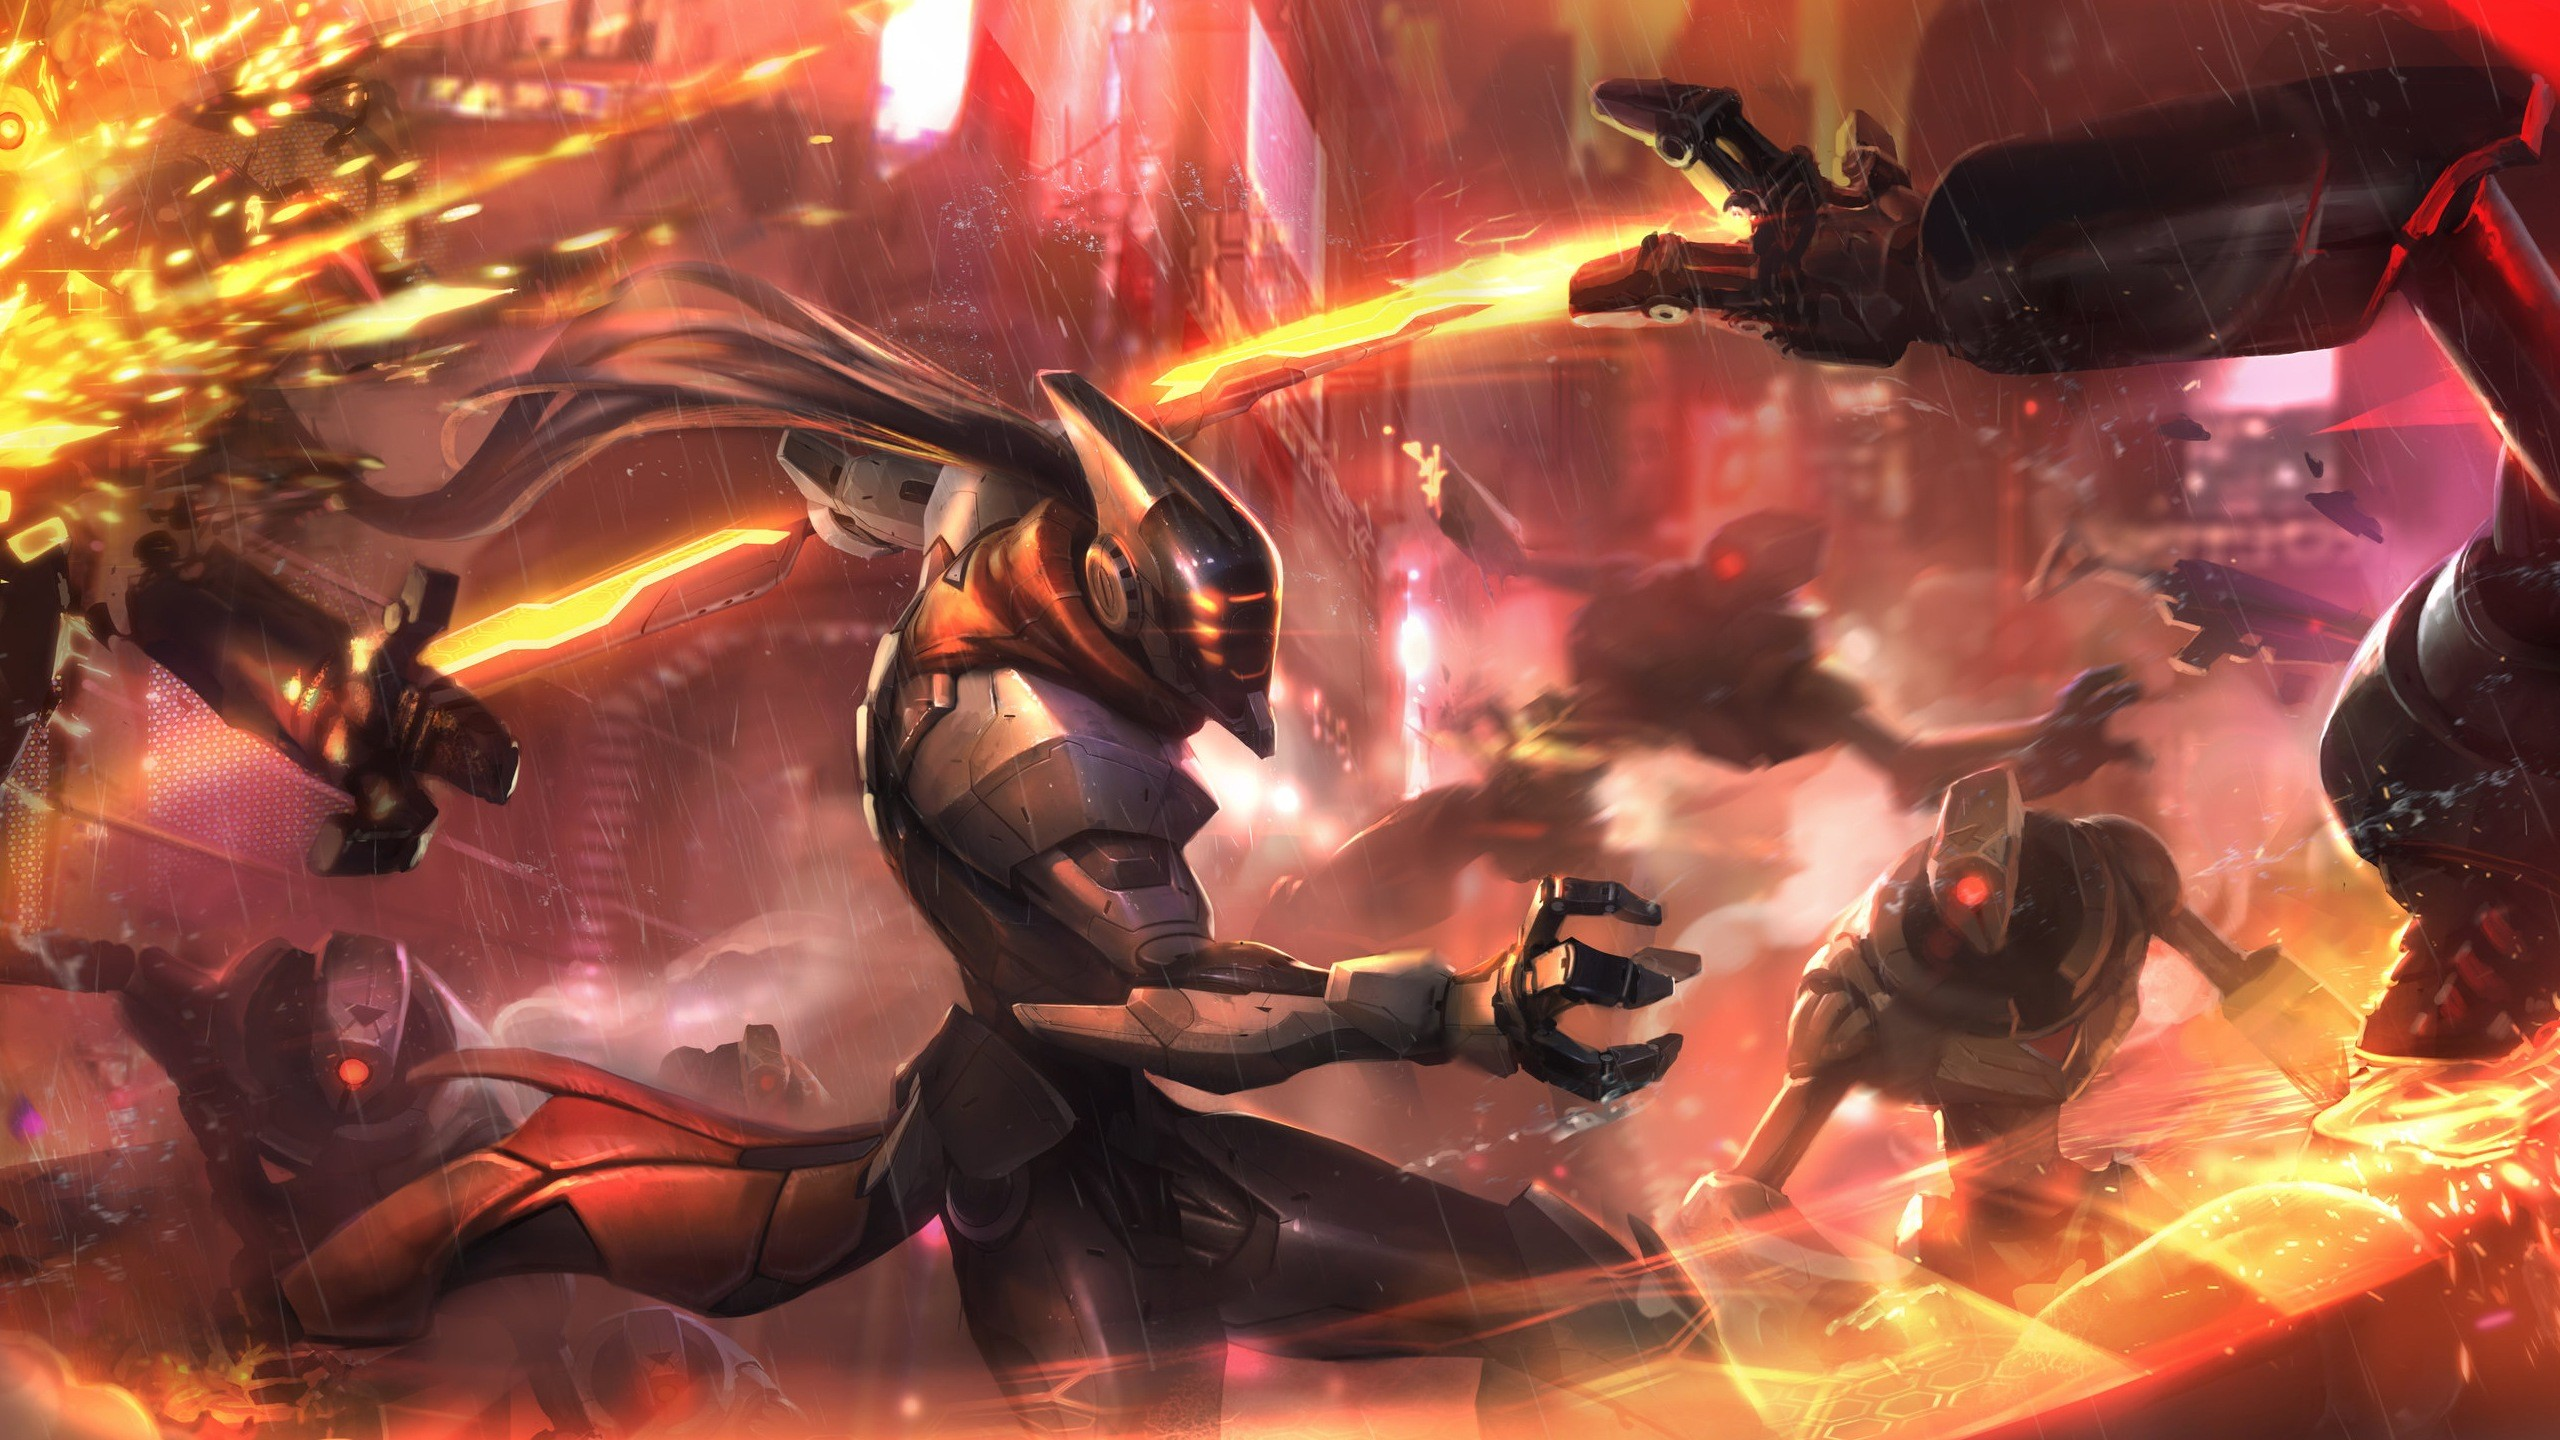 2560x1440 Download PROJECT Fiora Wallpaper Skin Art Fighting 1920x1080 | Places to  Visit | Pinterest | Skin art, Cosplay and Anime